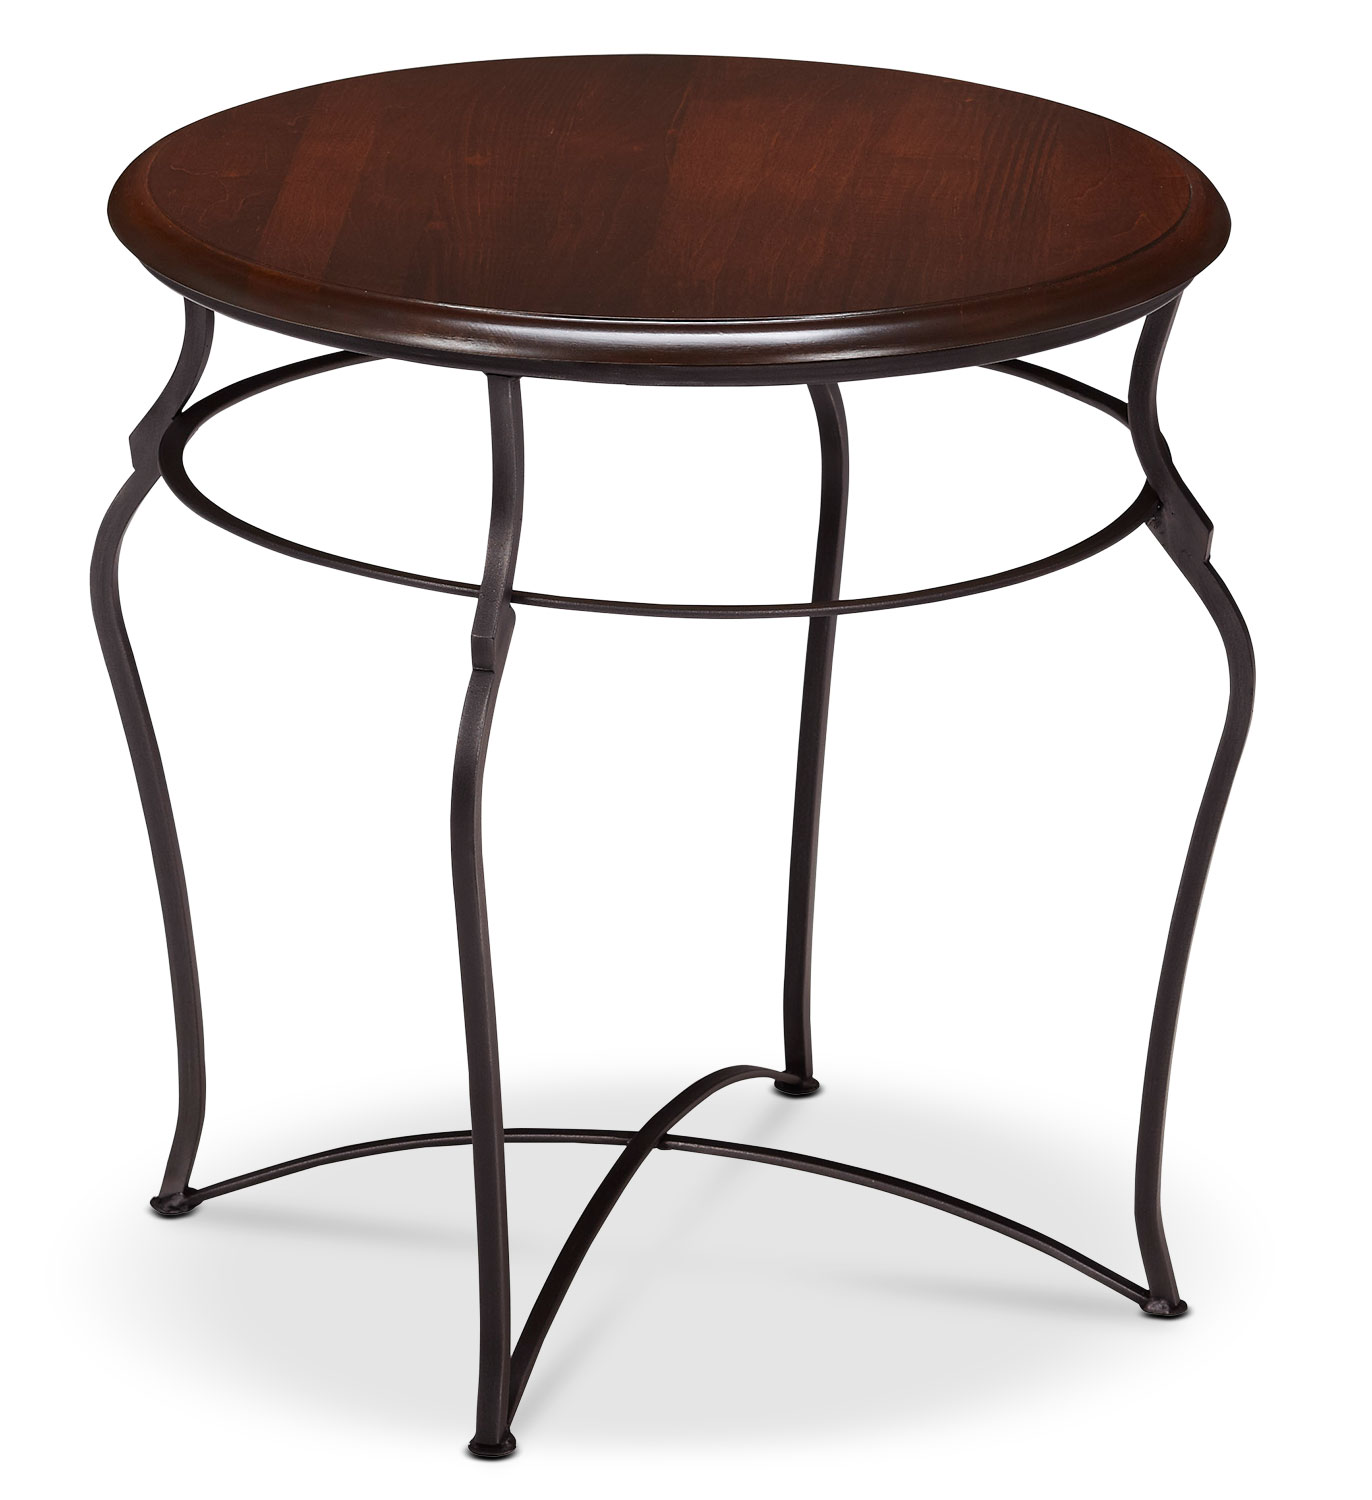 Accent and Occasional Furniture - Online Only - Adele End Table - Brown Cherry with Black Base